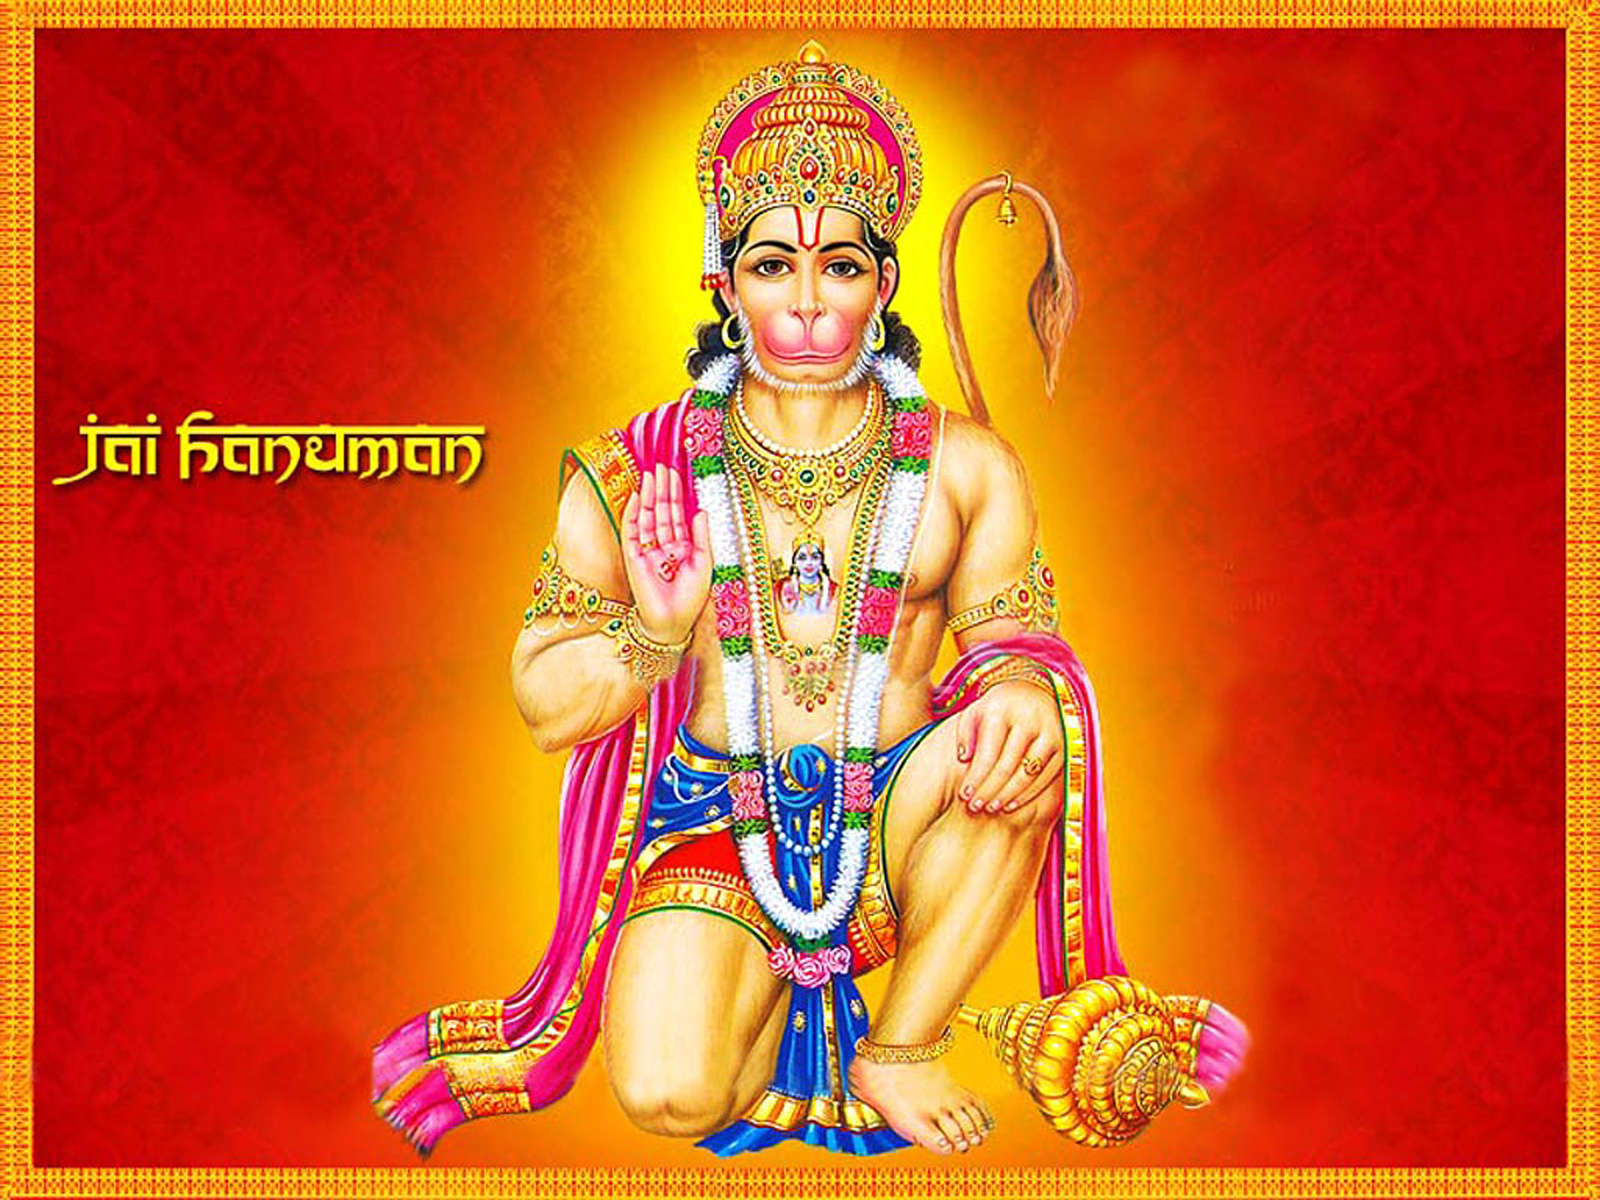 happy hanuman jayanti 2018 images wallpapers whatsapp dp pics photos